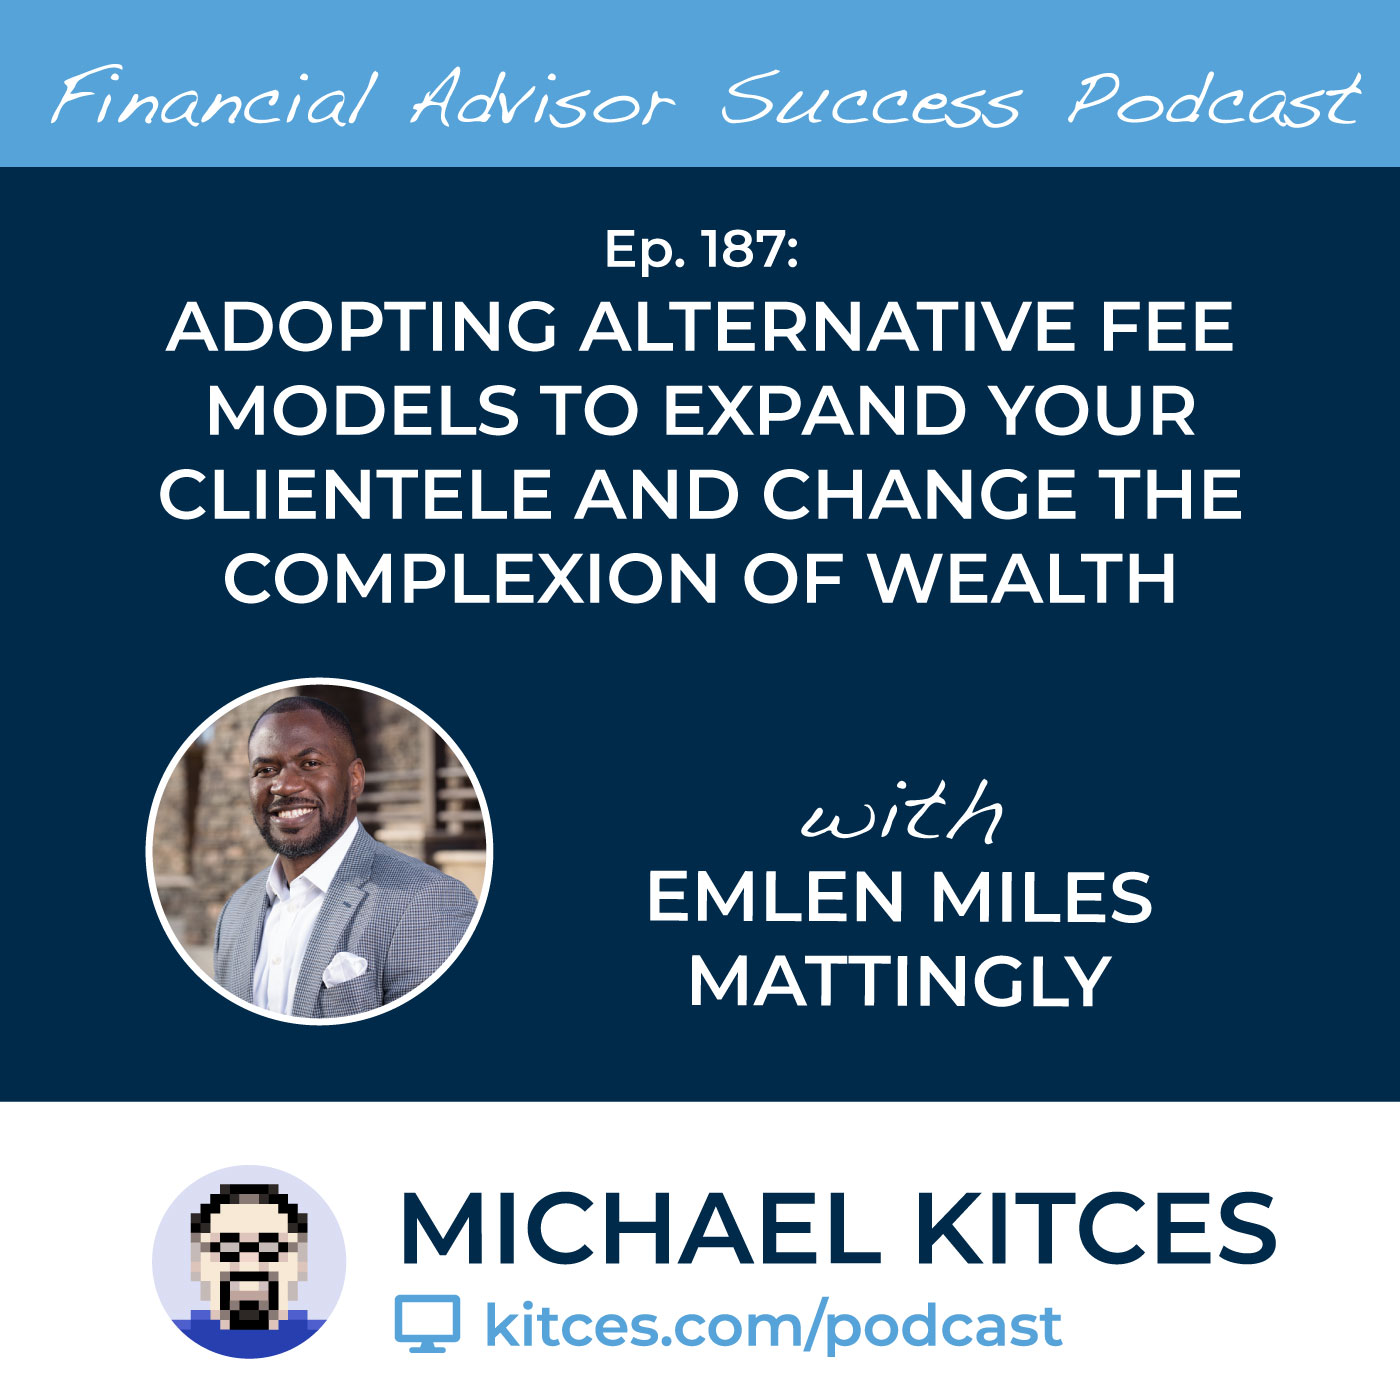 Ep 187: Adopting Alternative Fee Models To Expand Your Clientele And Change The Complexion Of Wealth with Emlen Miles-Mattingly